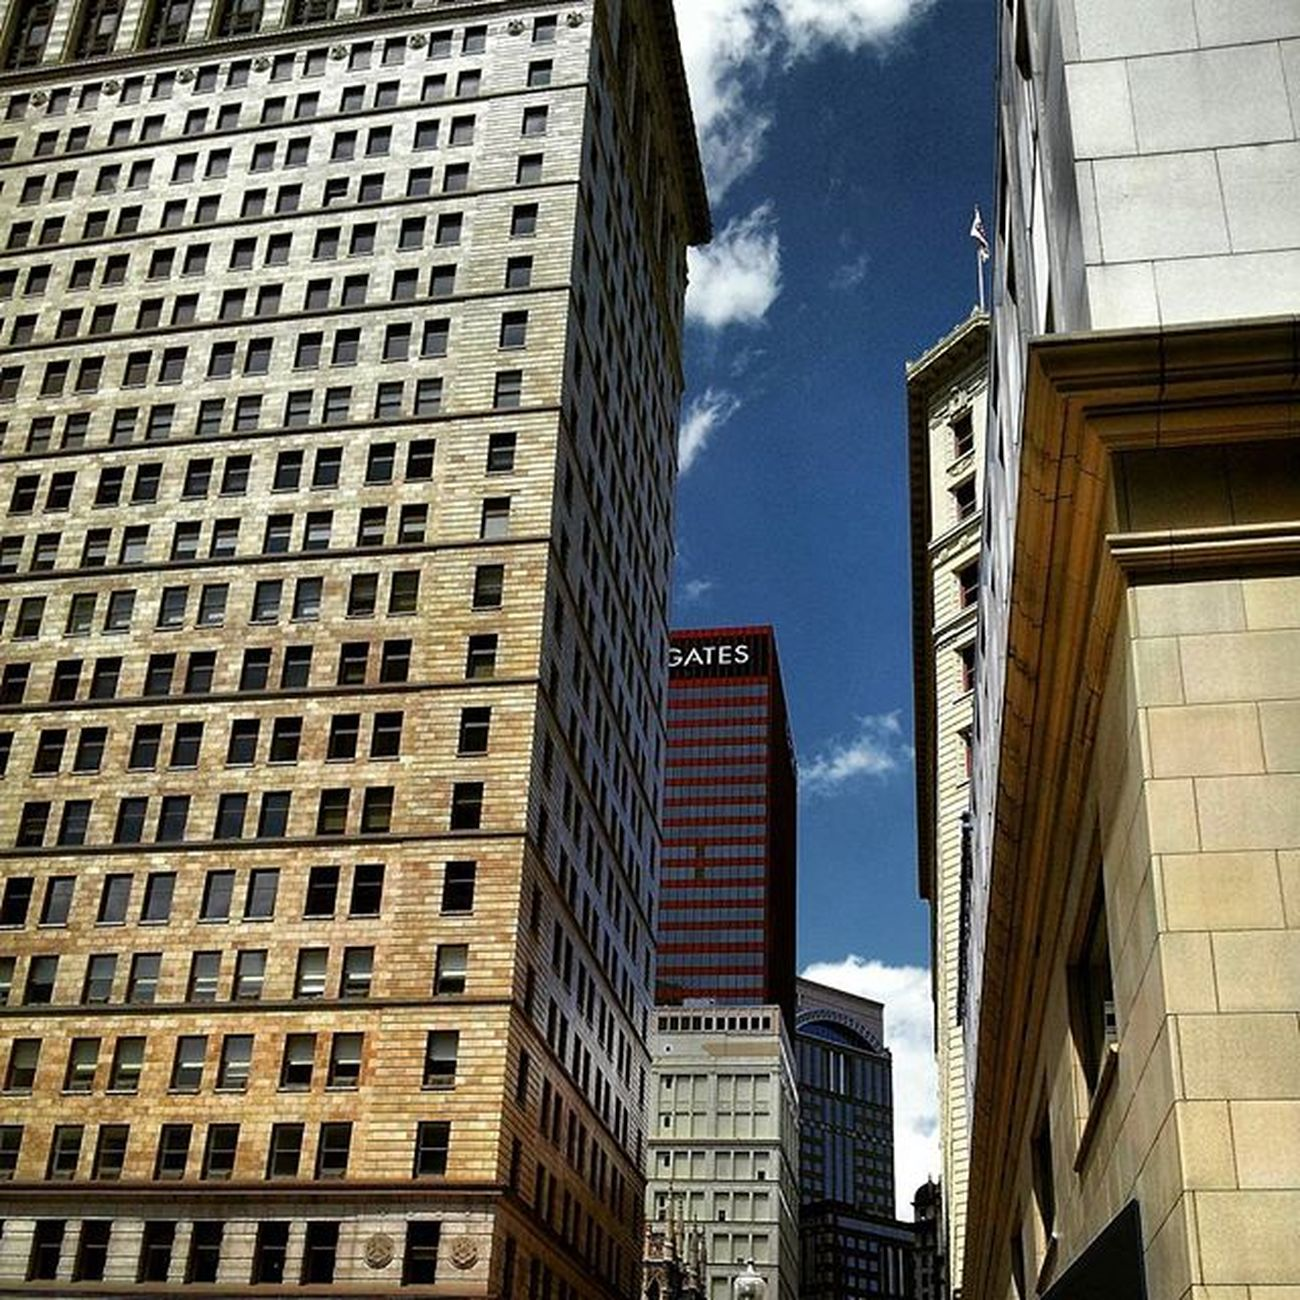 Downtown. ▫ Moodygrams 412 PGH Steelcitygrammers Pittsburgh Street Buildings Agameoftones Igers Mood Tones Vibes Photo Streetphotography Photooftheday Imaginatones Moodygrams Urbangathering Shine Afternoon Sunshine Spring Photography Underrated ArchiTexture